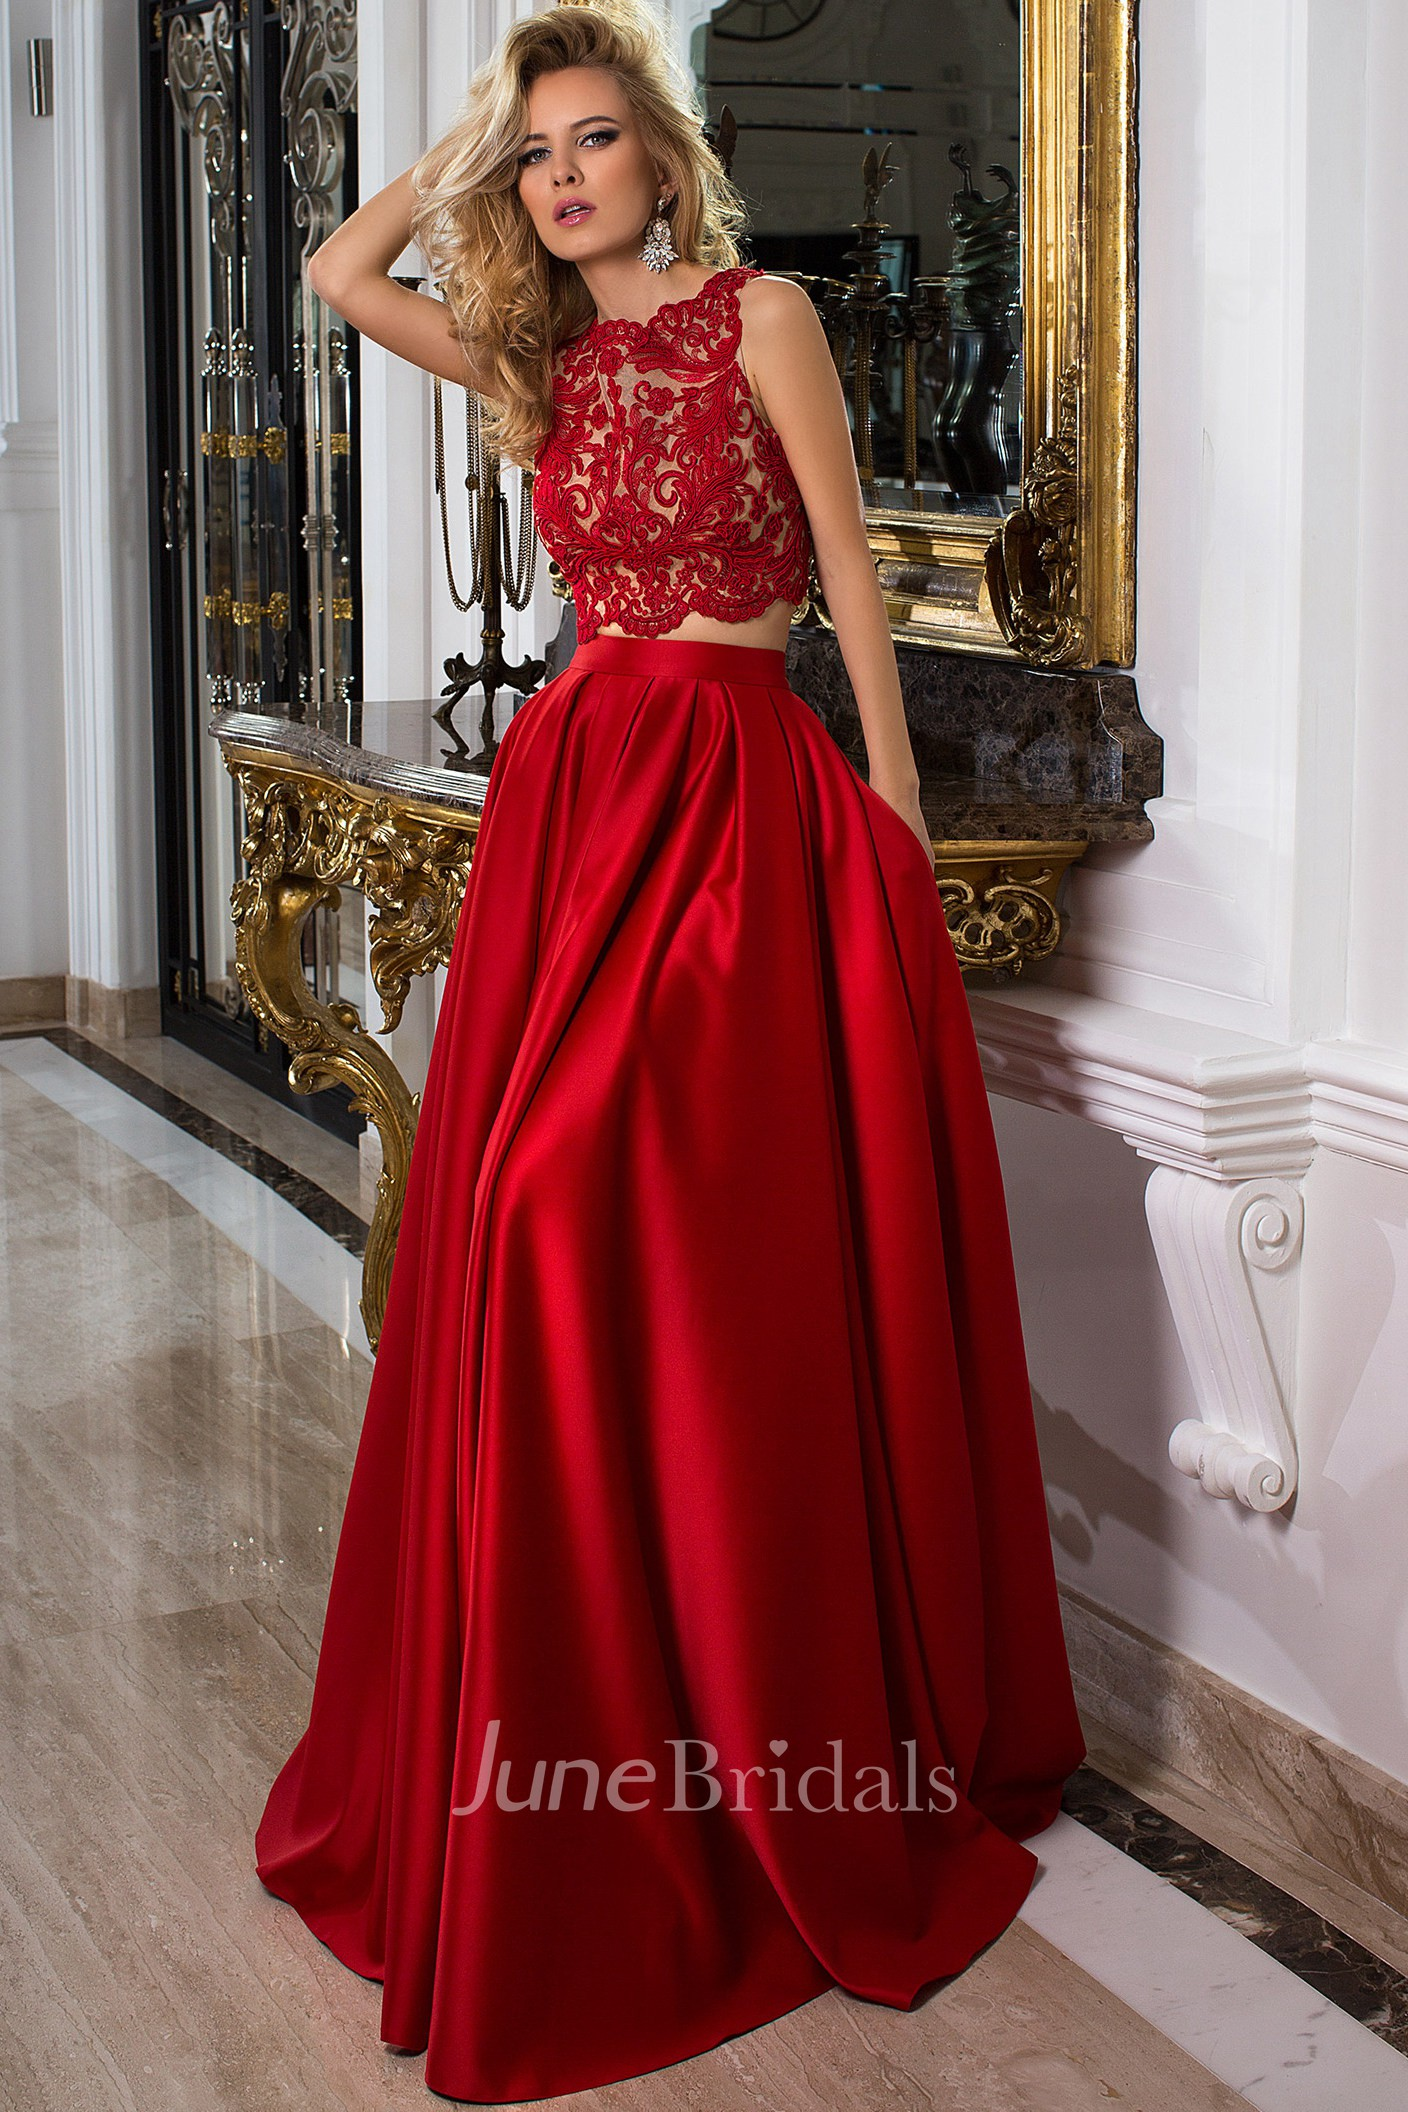 dfdd2ced7606 Sleeveless Jewel Neck Appliqued Satin Prom Dress With Illusion Back - June  Bridals